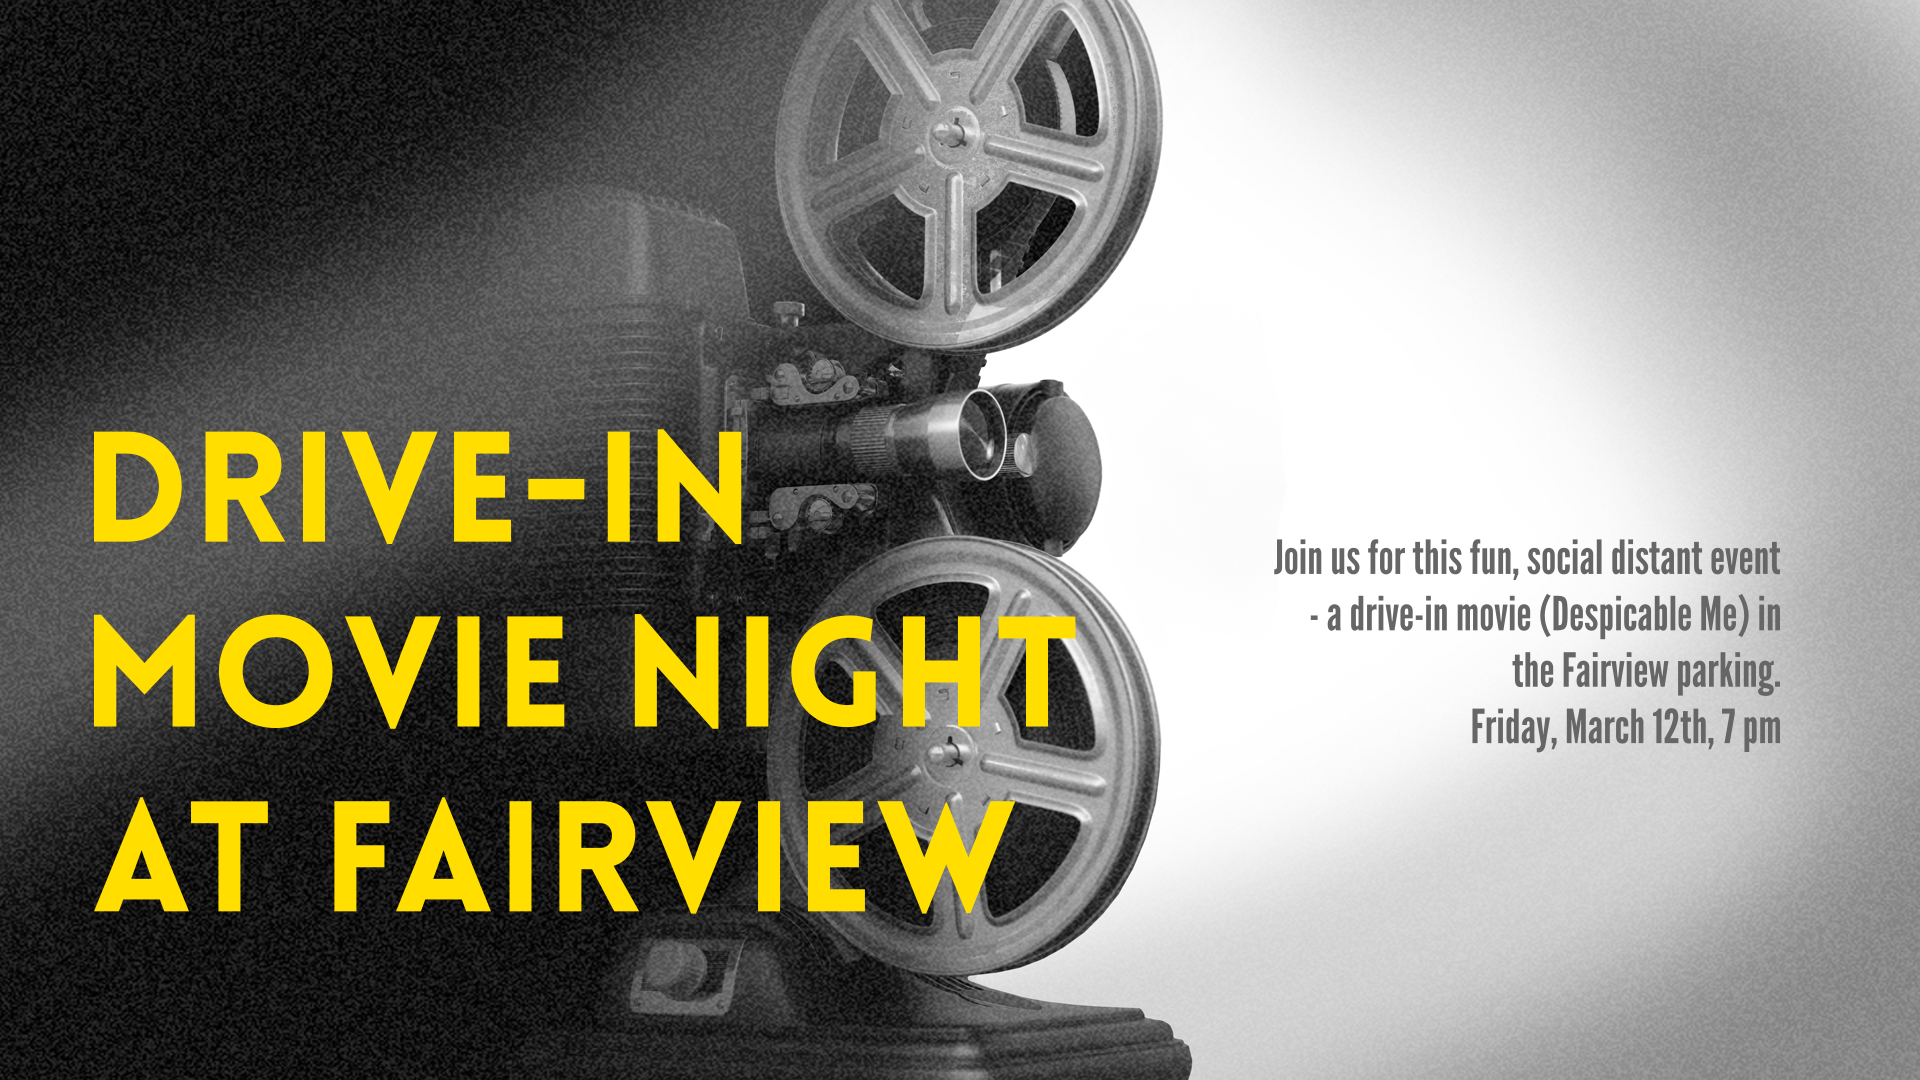 Drive-In Movie night at Fairview